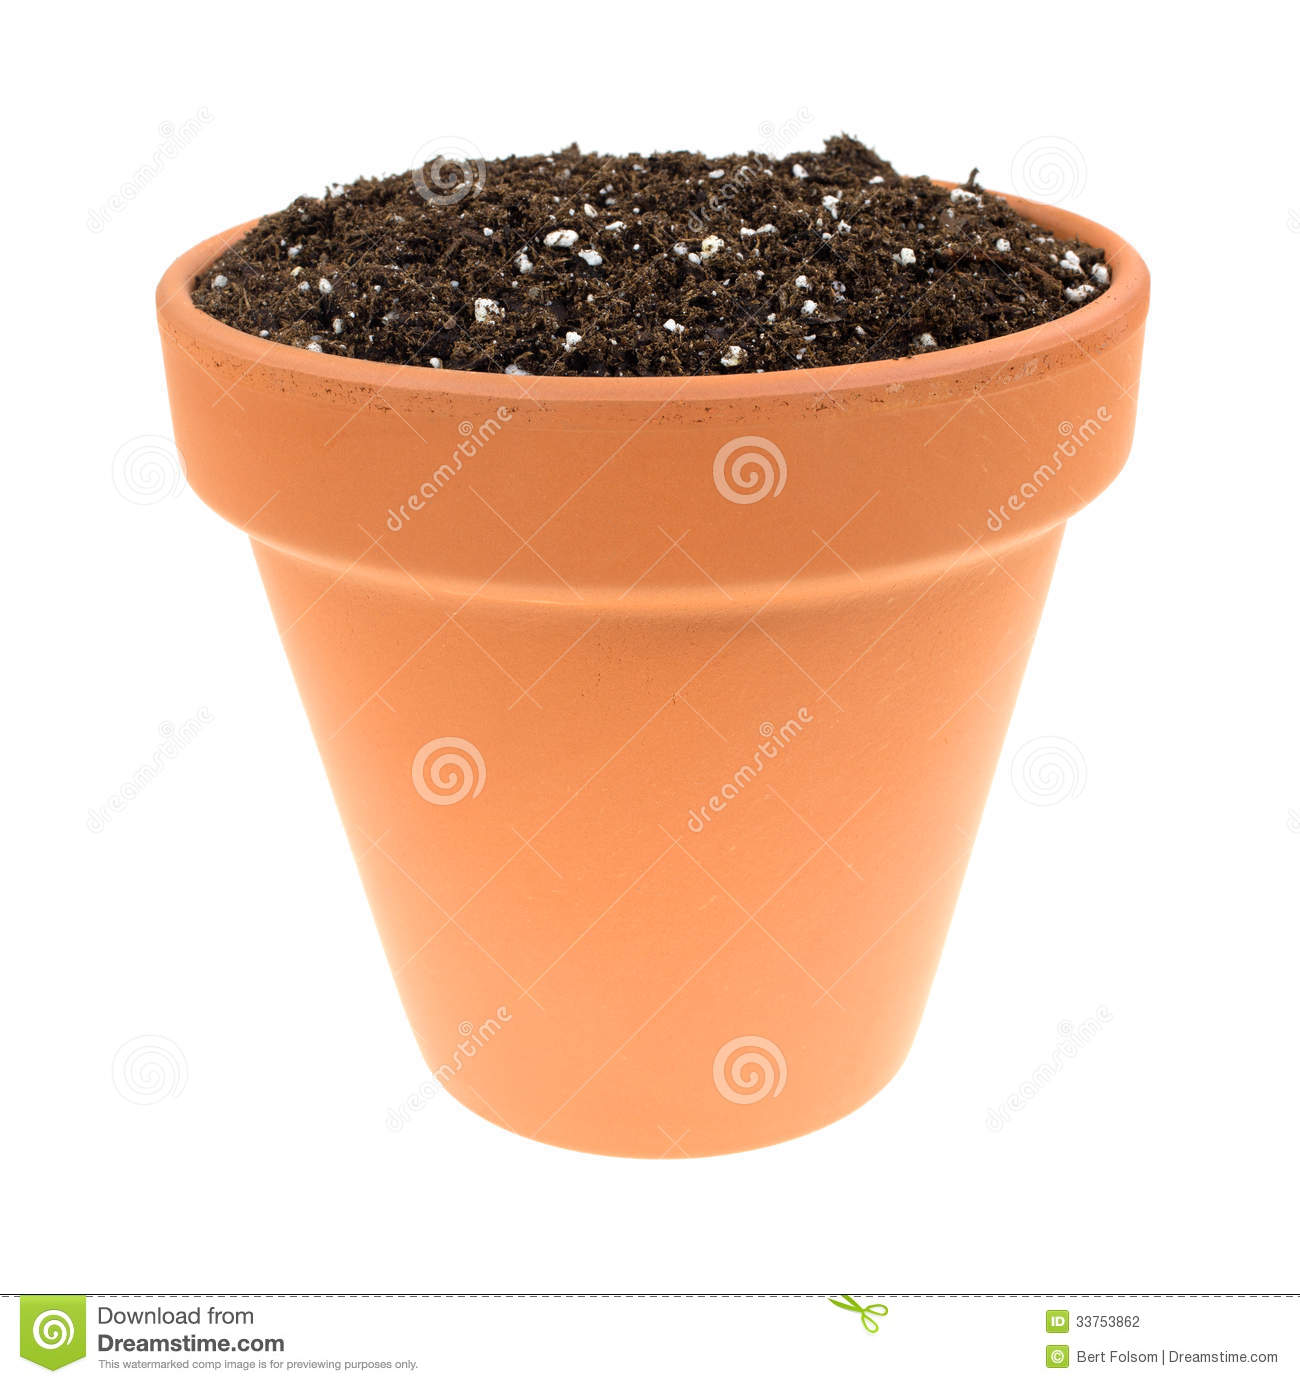 Organic Potting Soil In Clay Pot Stock Photography - Image: 33753862